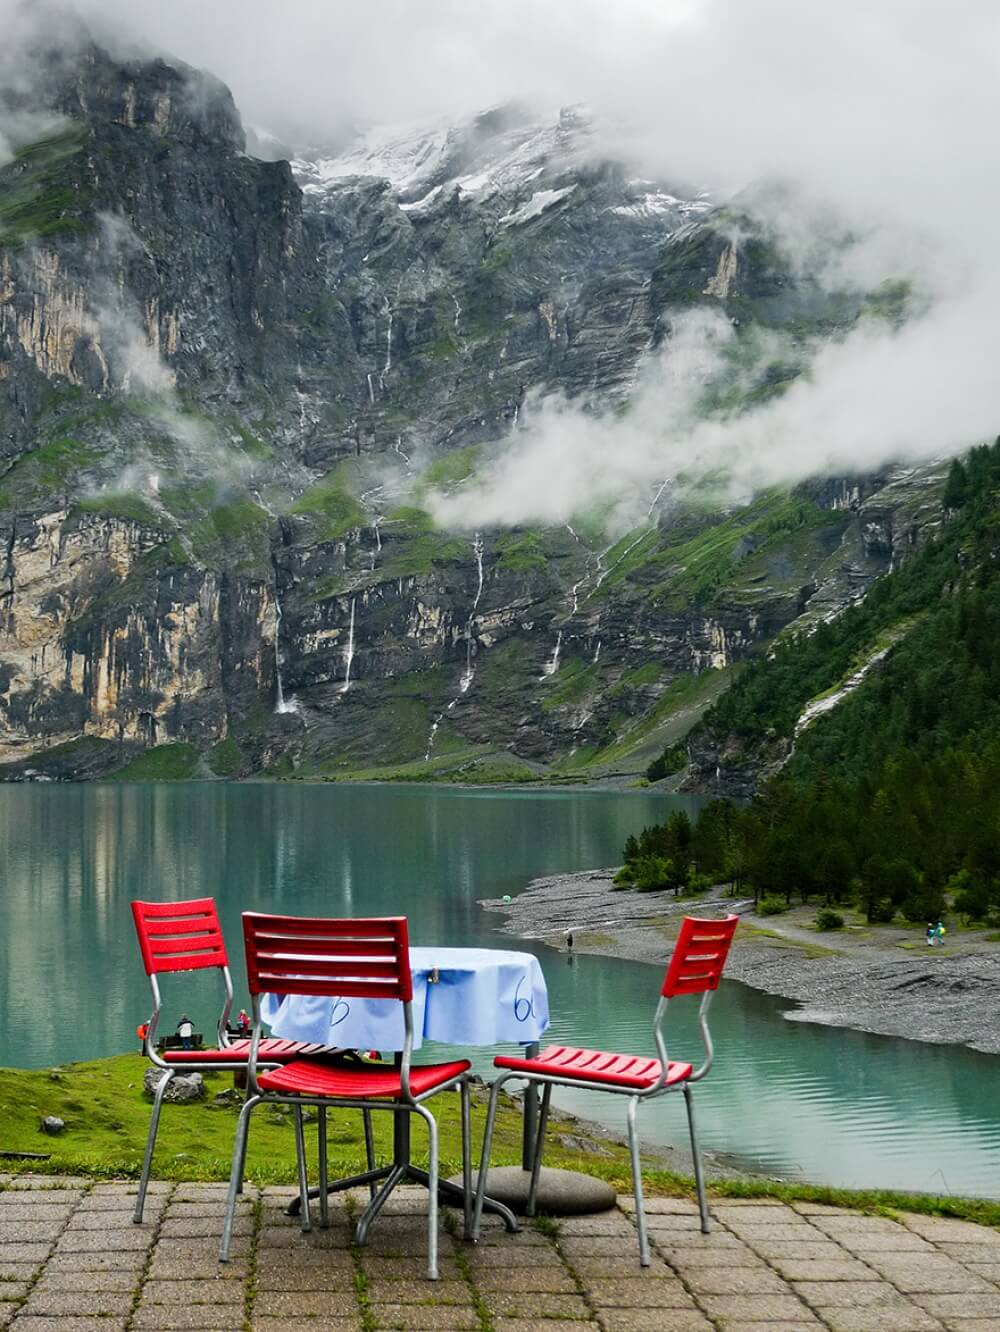 22 Stunning Hotels That Will Make You Want to Book Your Next Trip NOW! - Hotel-Restaurant Öschinensee, Switzerland